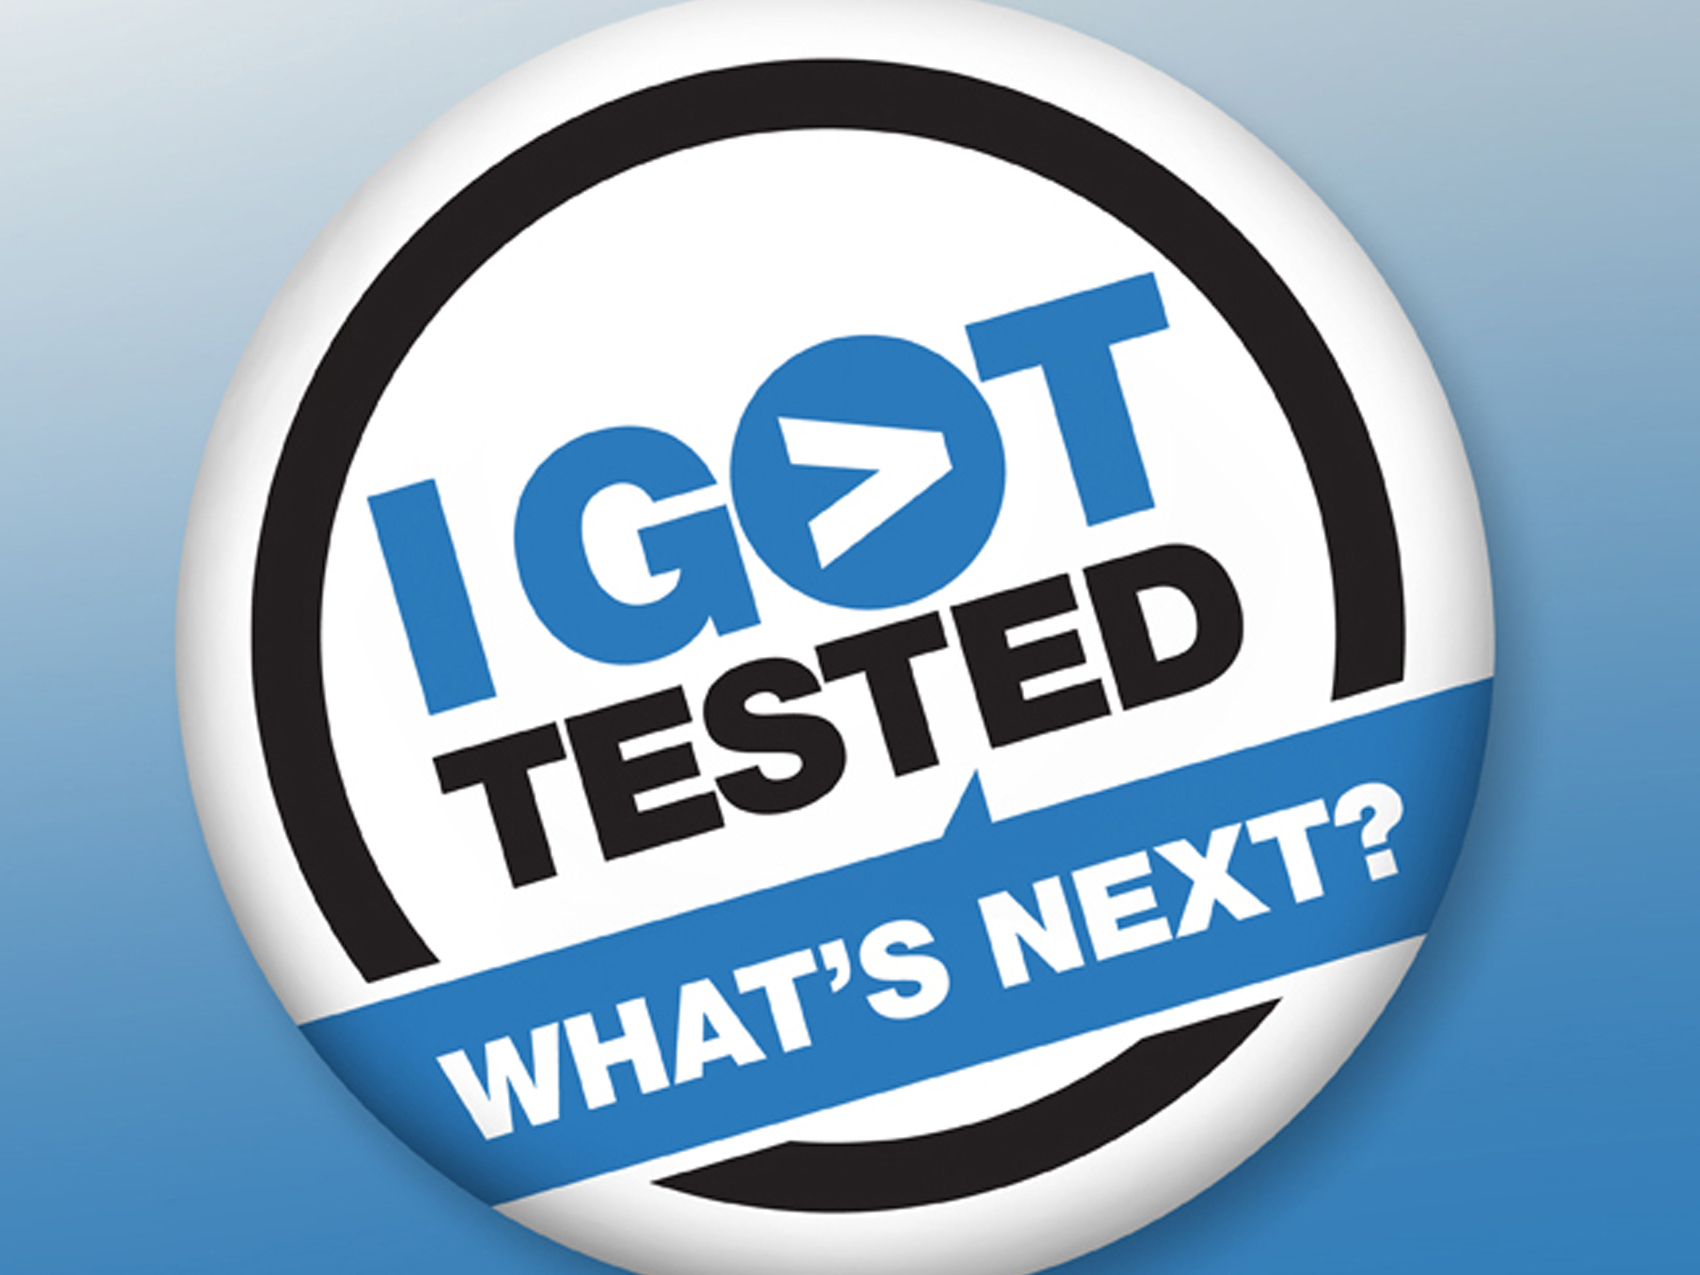 I got tested What's Next?